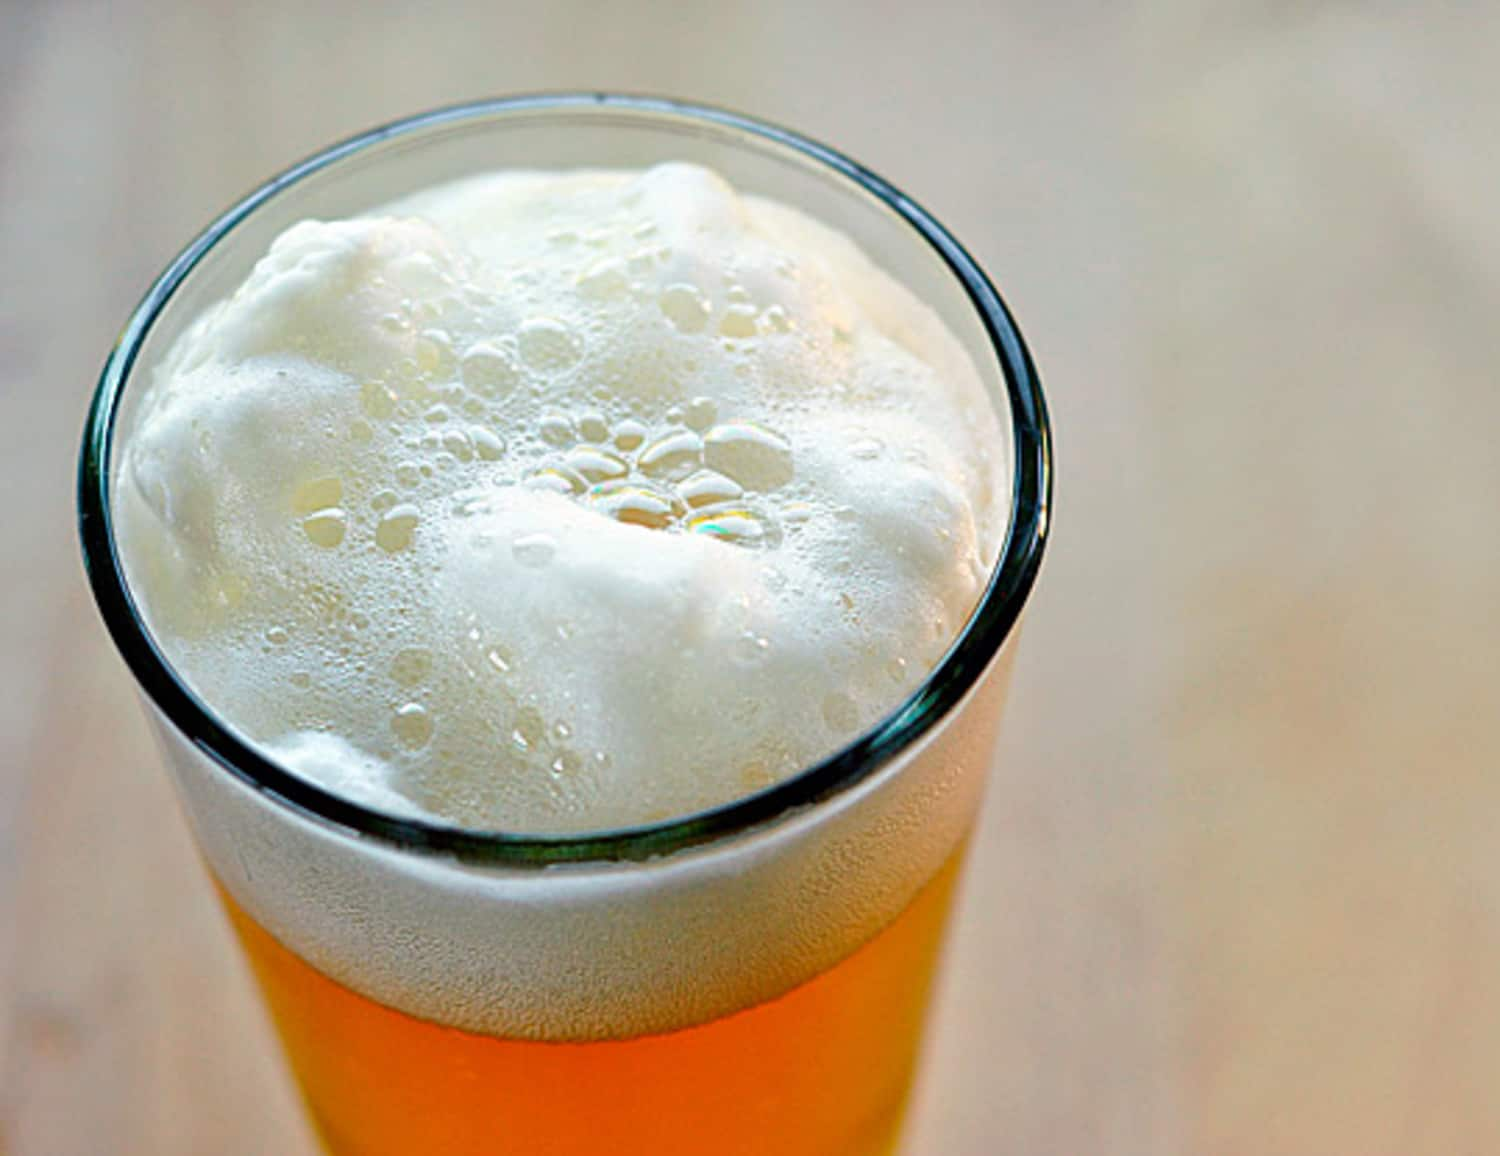 Why You Should Drink Beer from a Glass